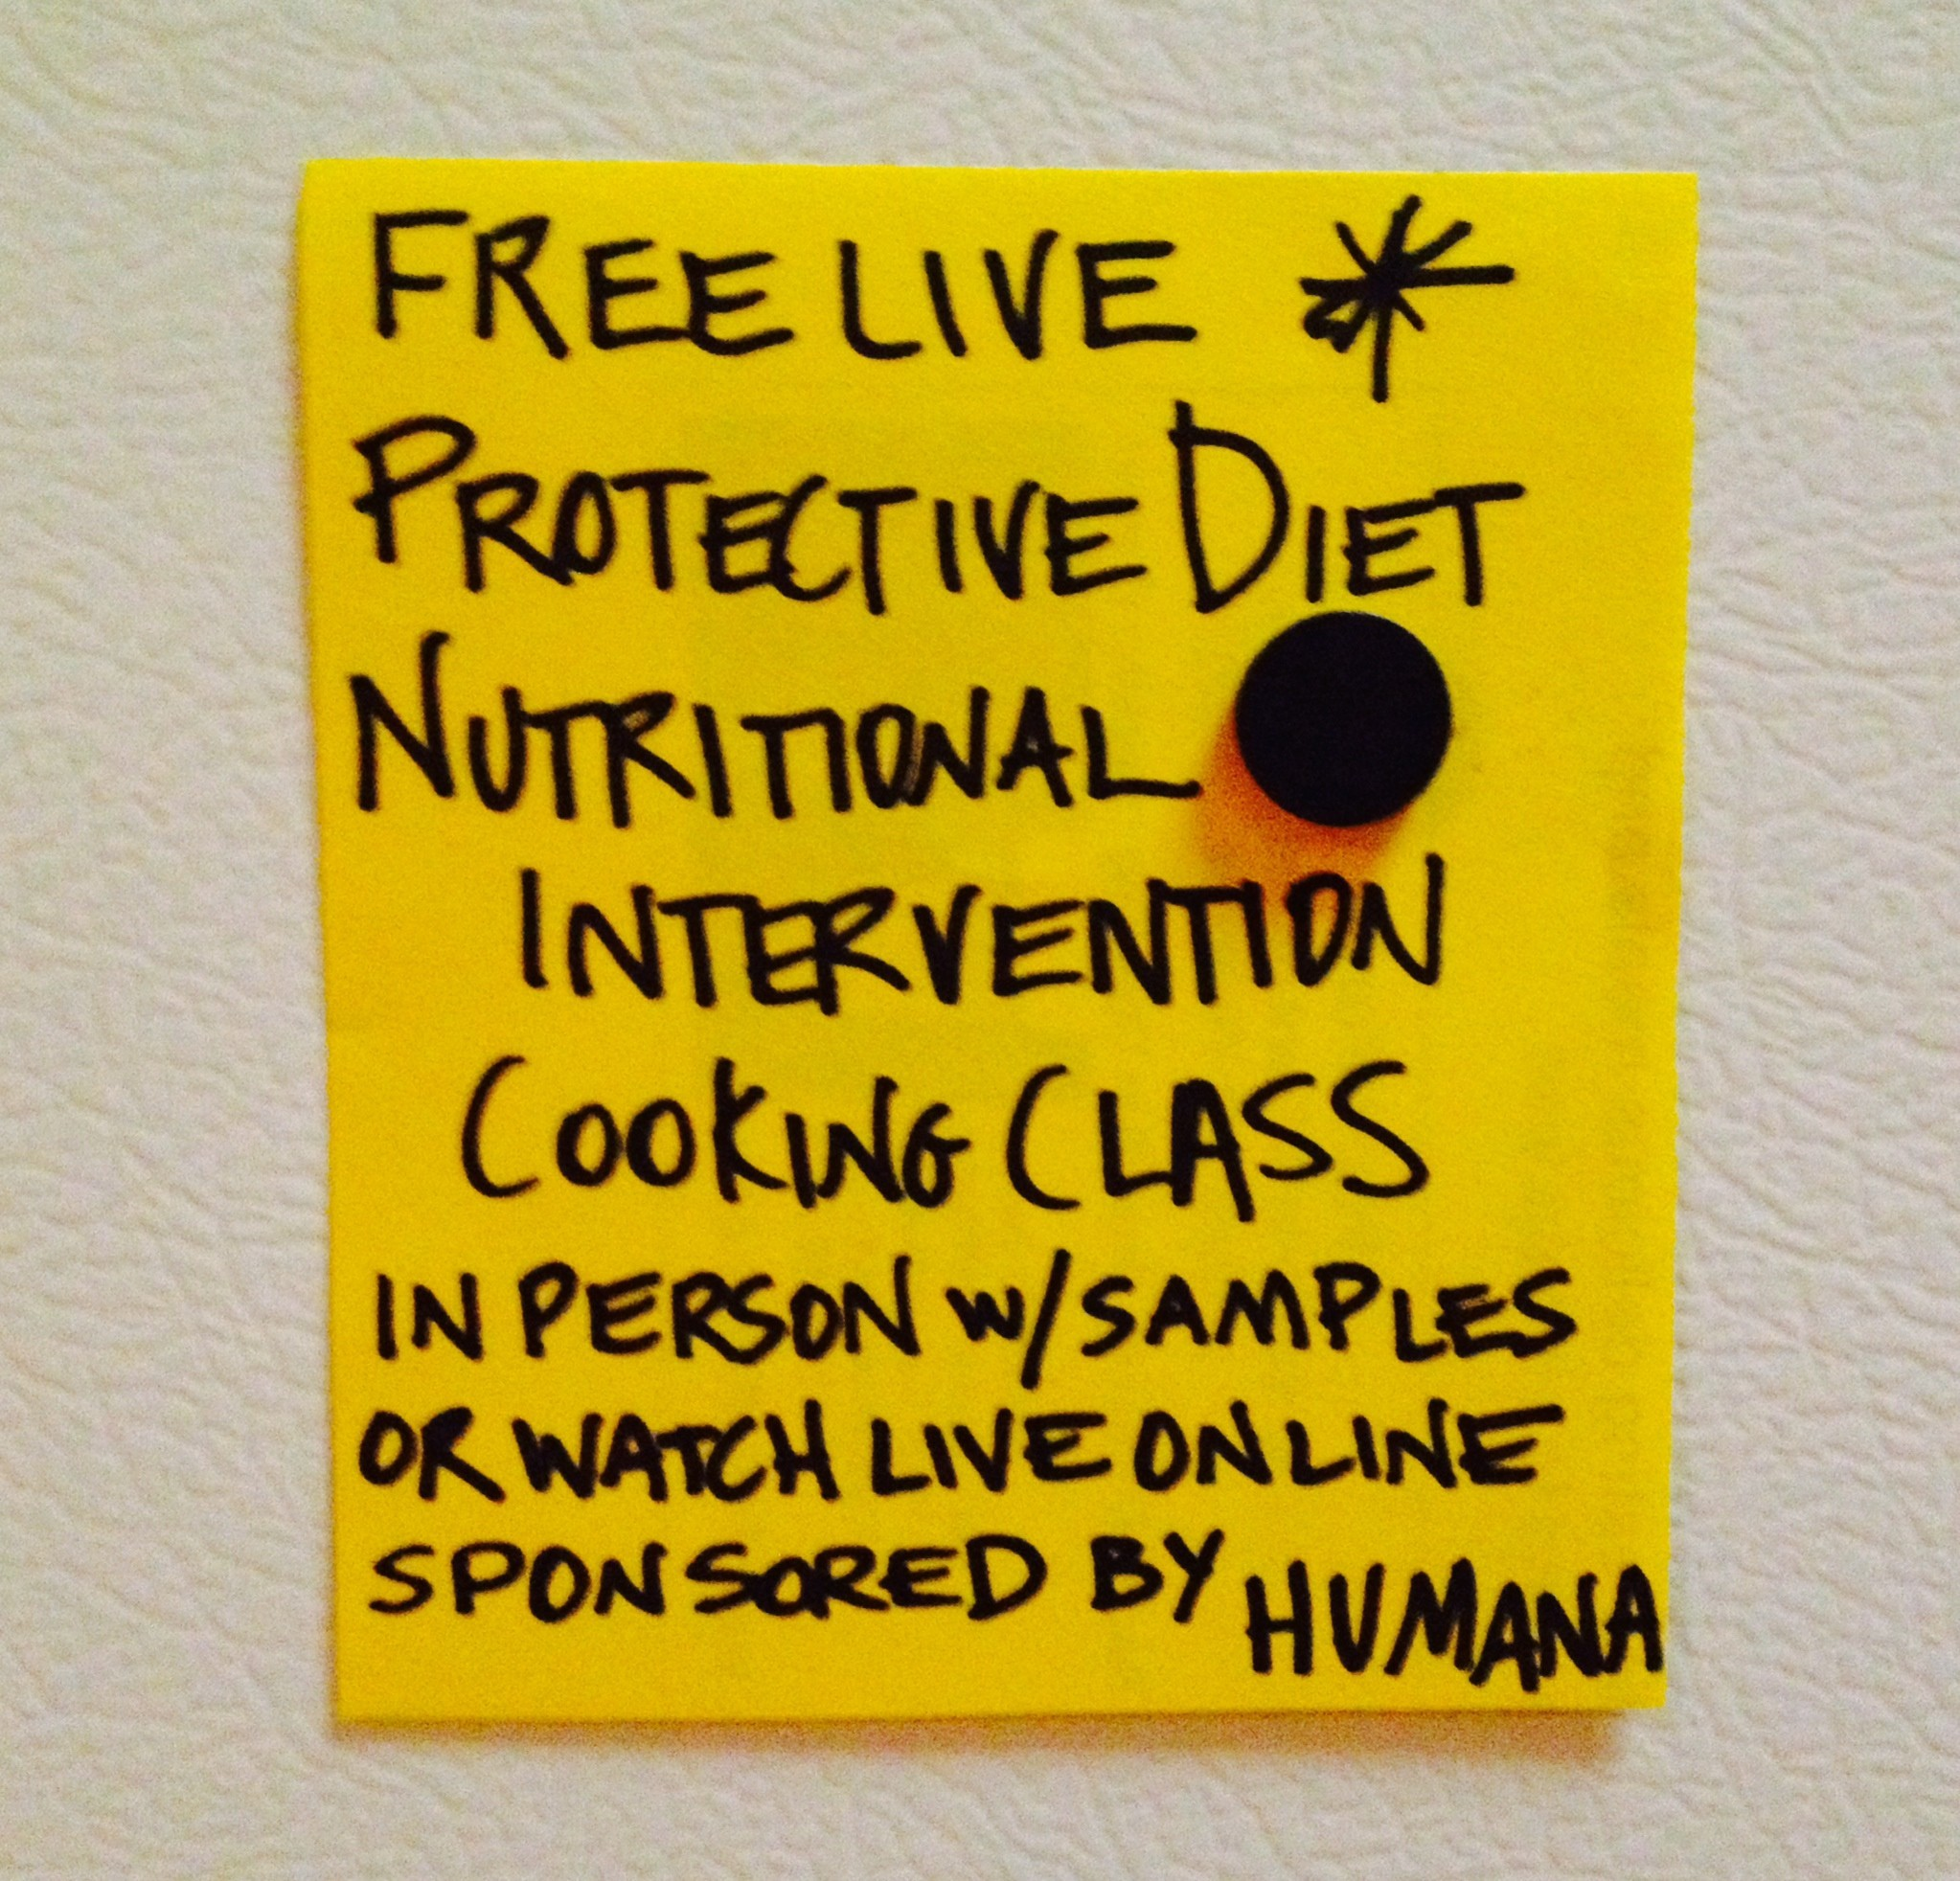 September 17 - Nutritional Intervention Cooking Class sponsored by Humana